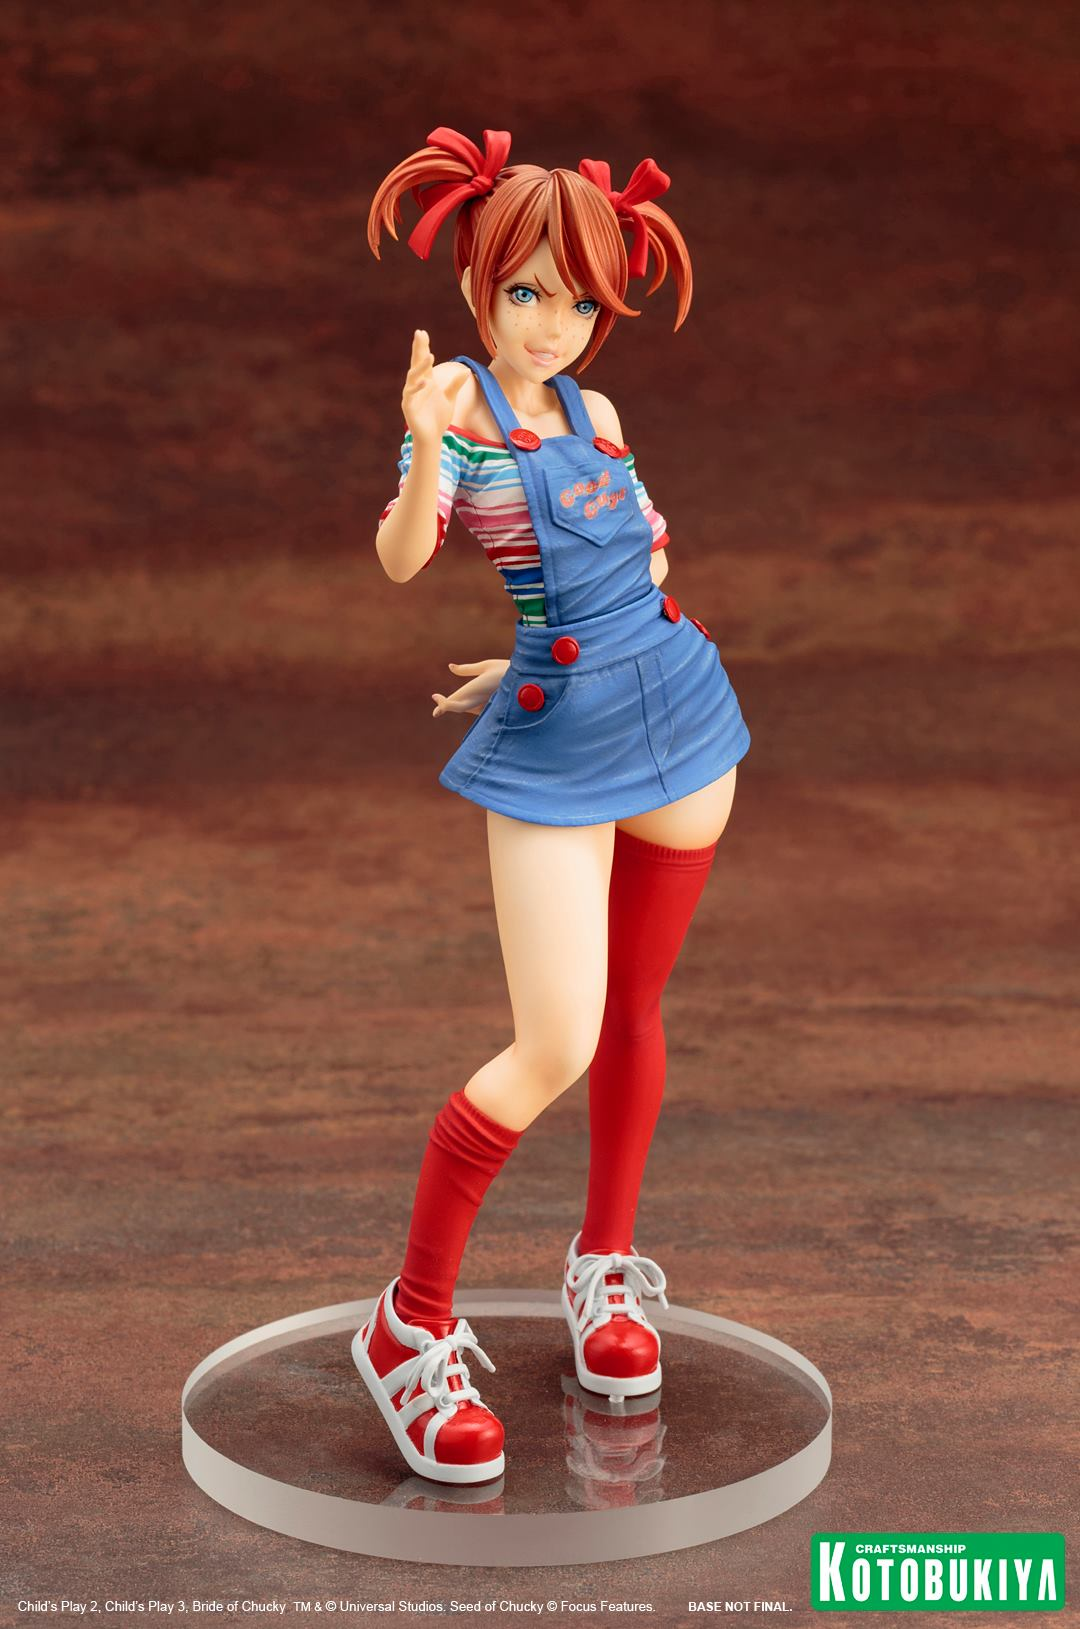 childs-play-chucky-exclusive-deluxe-version-bishoujo-statue-kotobukiya-1a